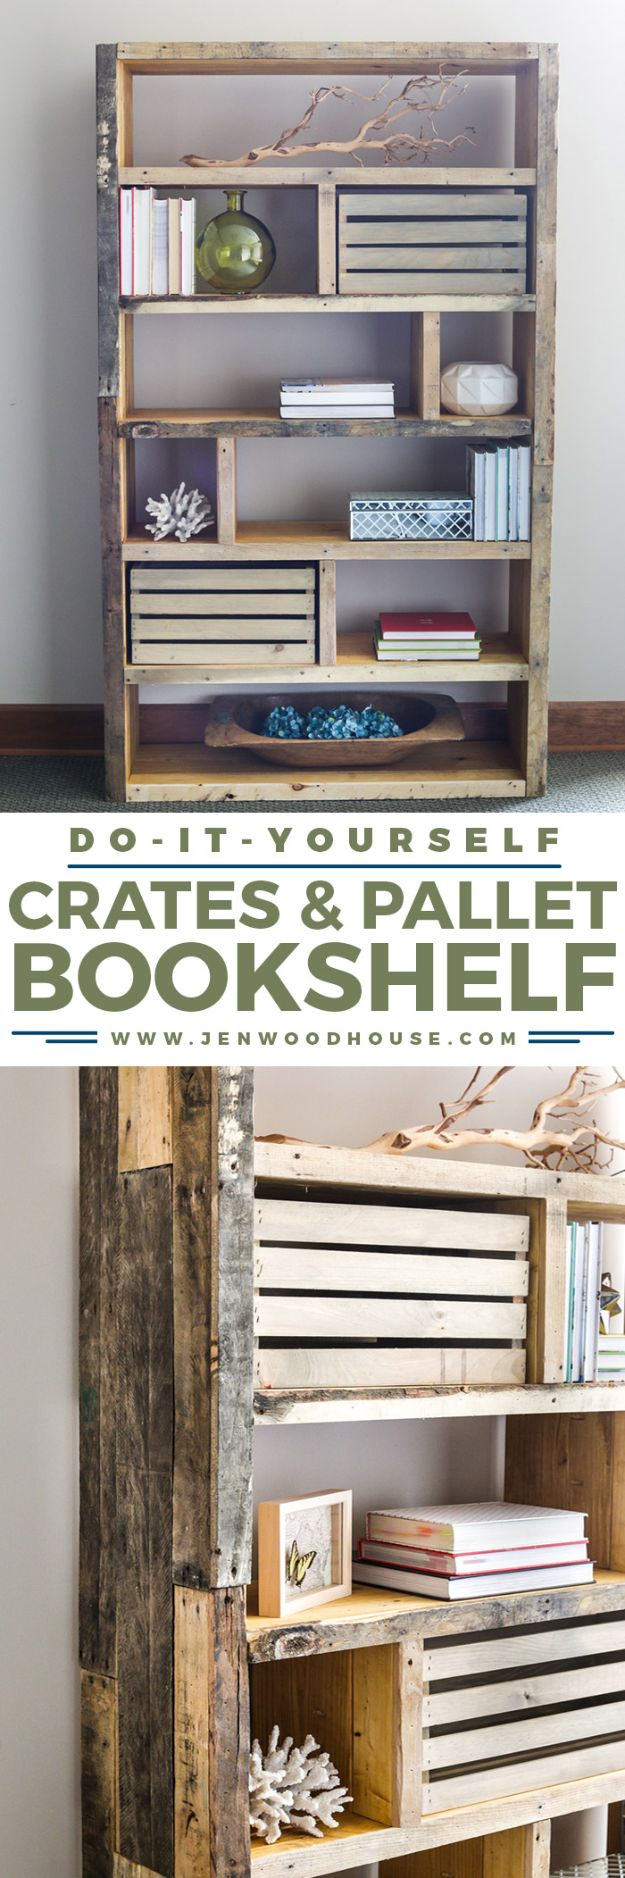 34 Diy Bookshelf Ideas Easy And Cheap Bookcases To Make